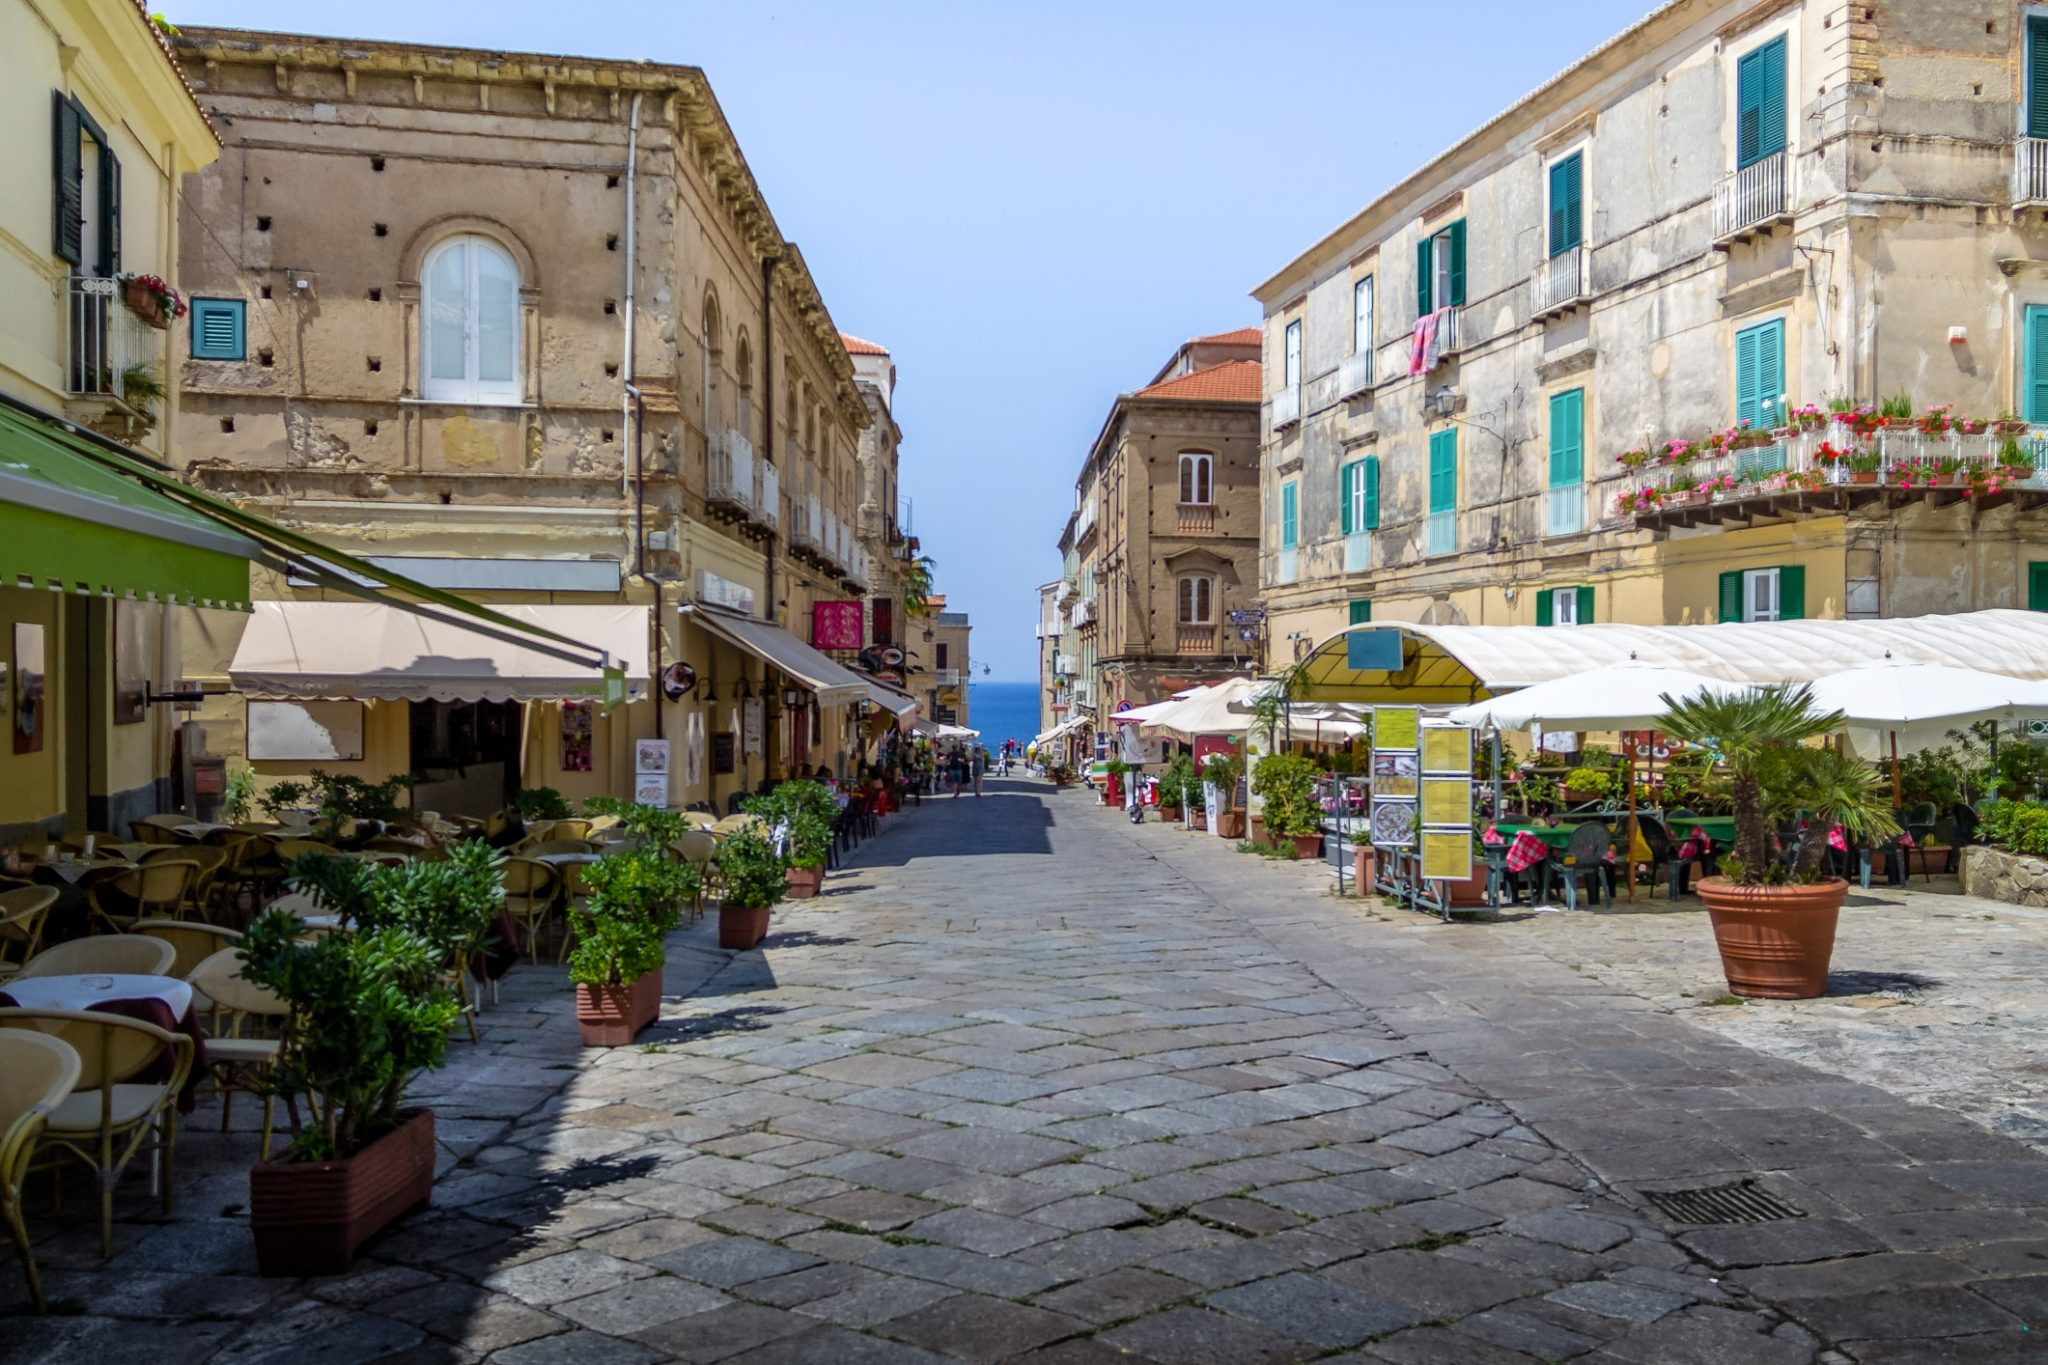 Buildings and restaurants in downtown Tropea